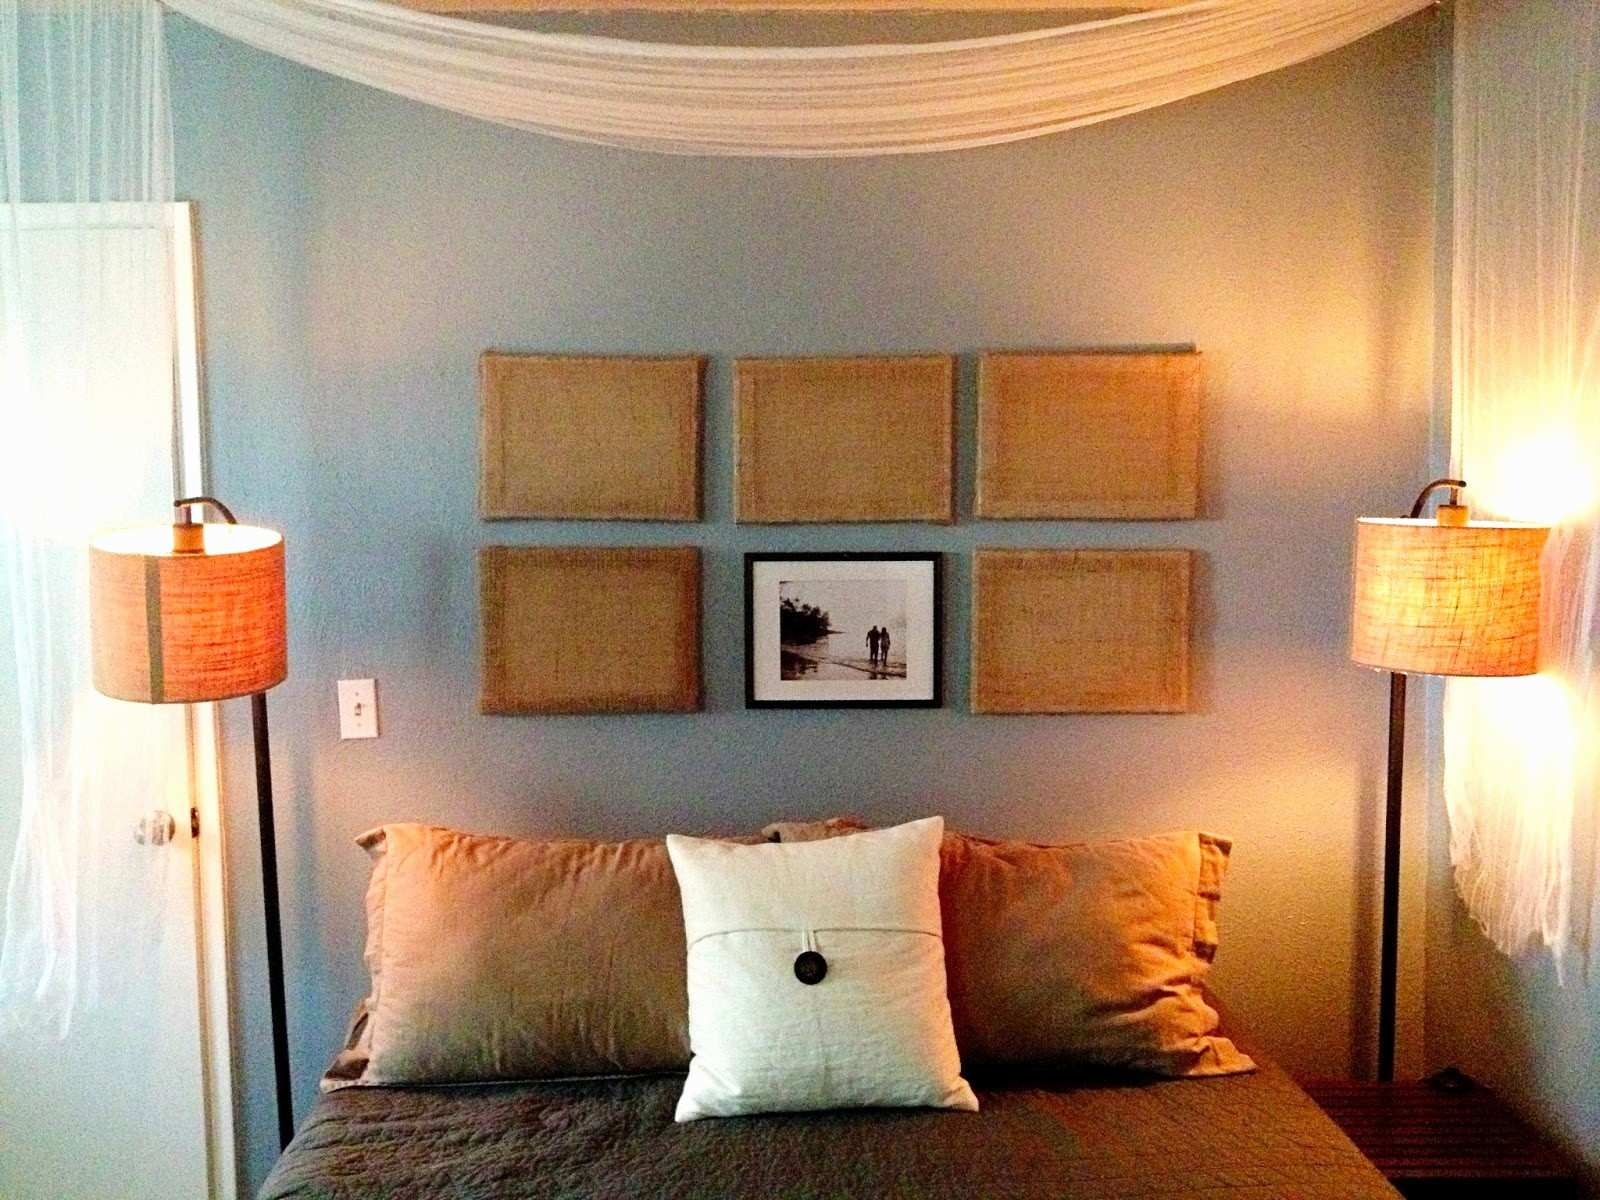 Wall Decor Bedroom Ideas Beautiful My thoughts Exactly Diy Od the